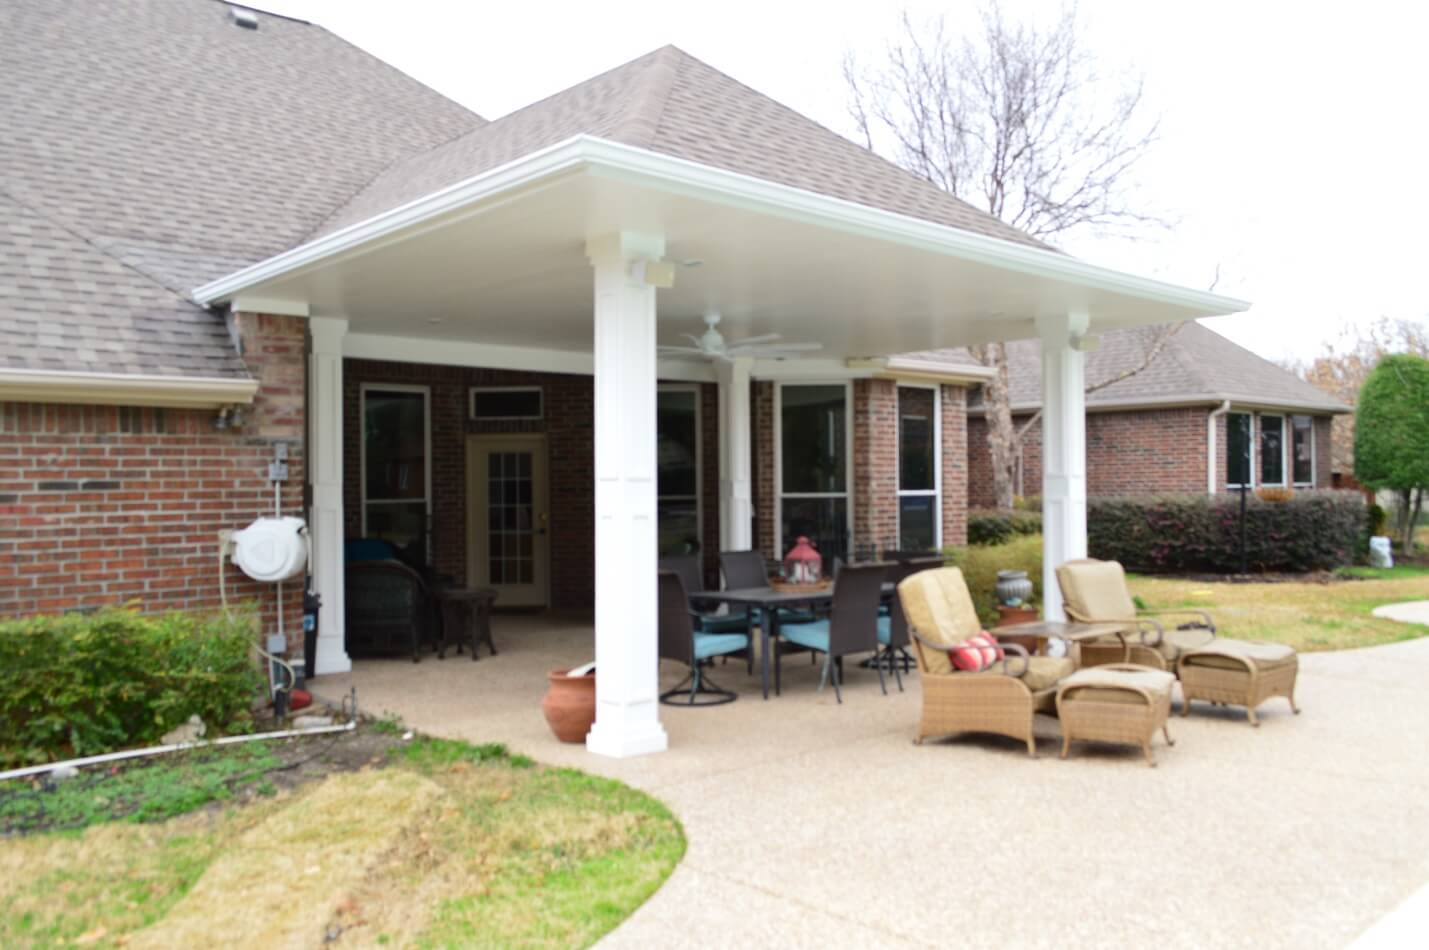 Covered Patio And Outdoor Sitting